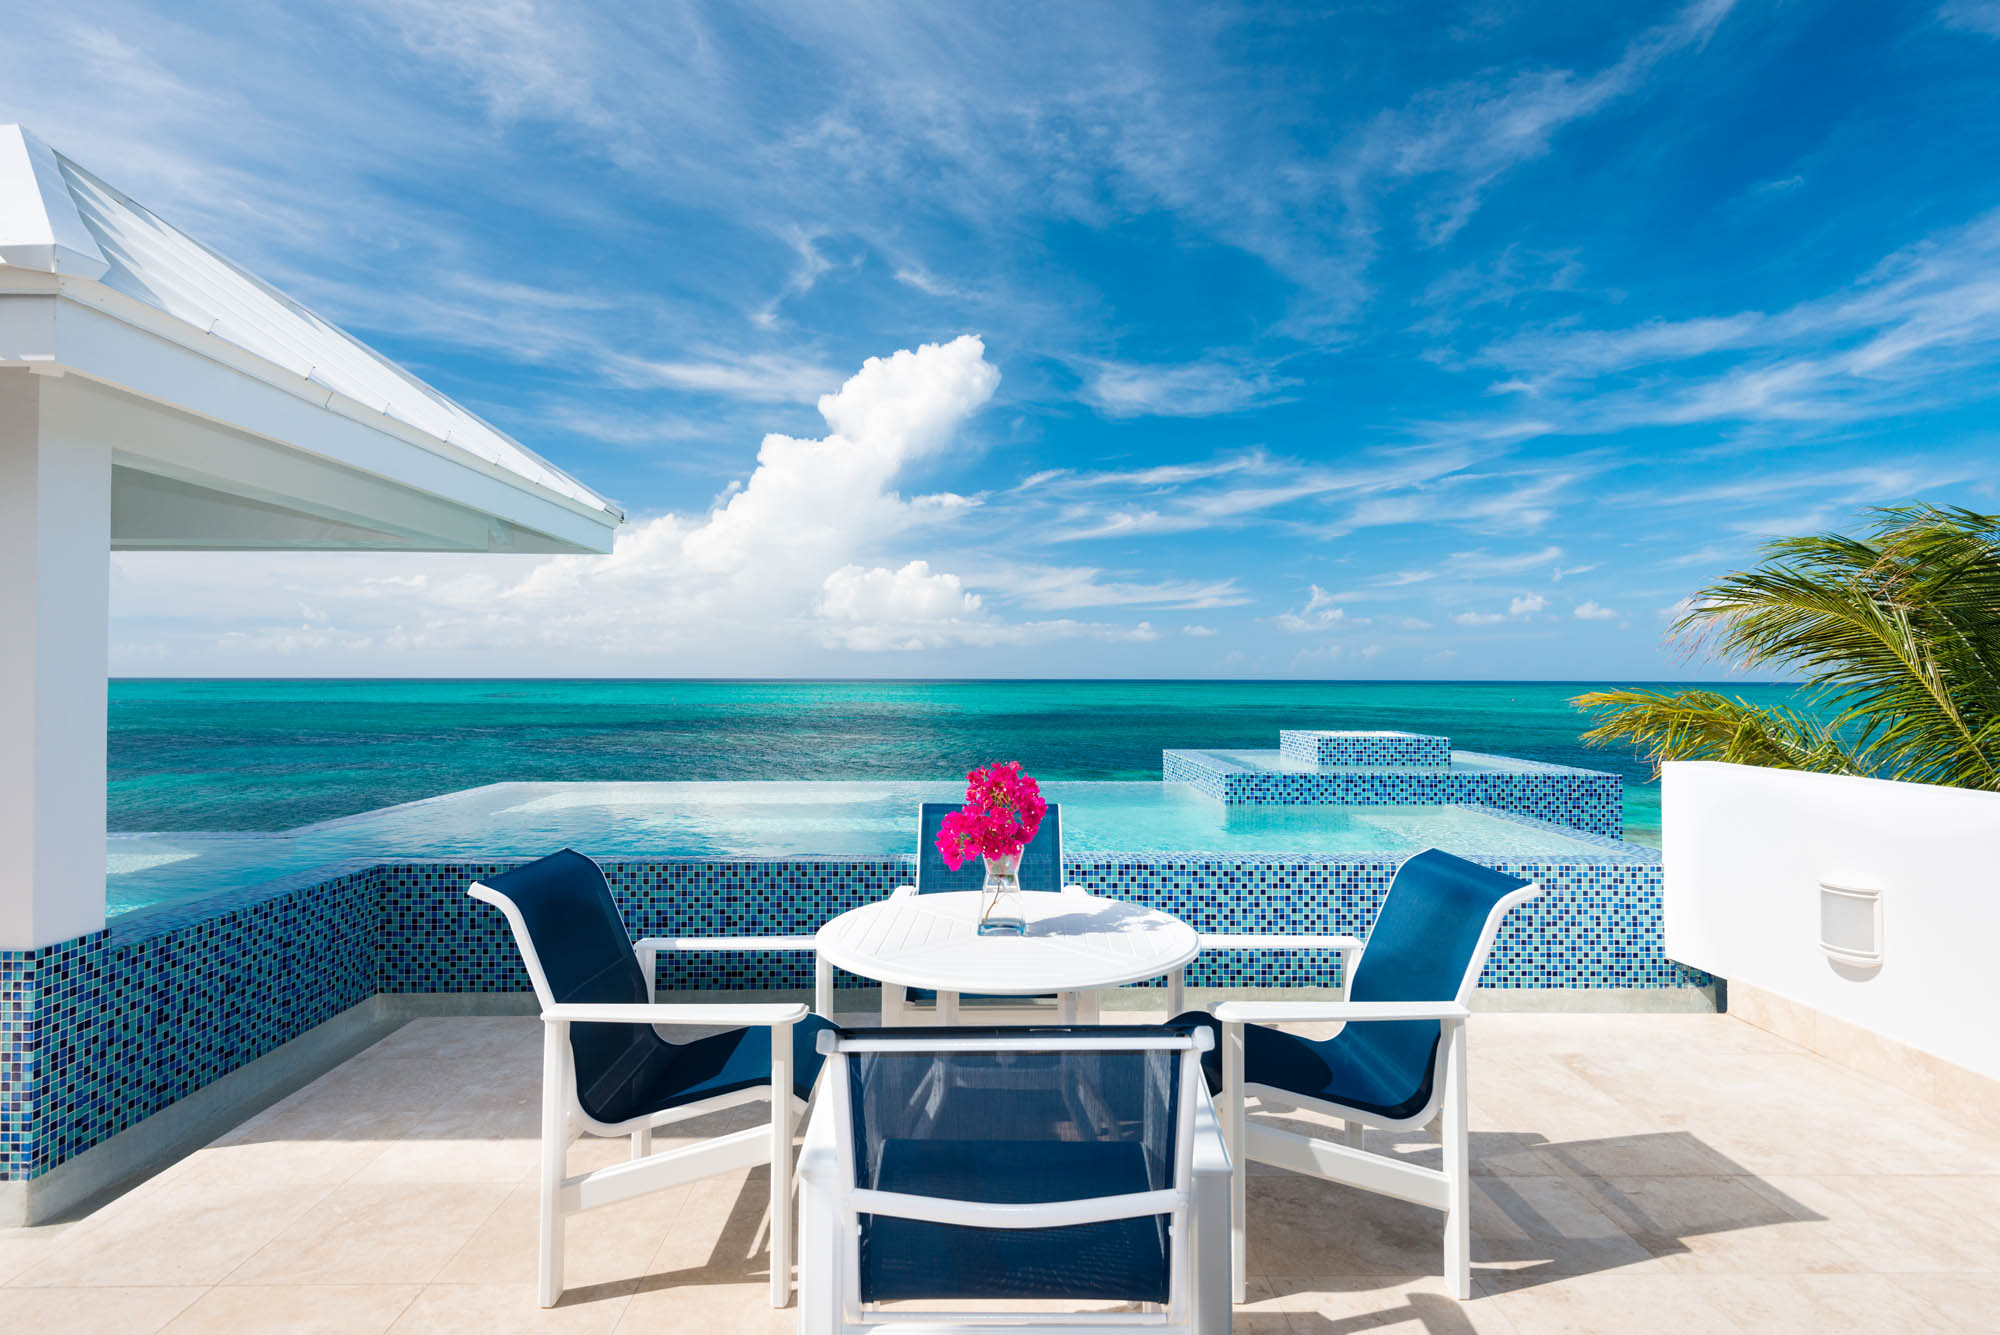 plum wild, grace bay beach, providenciales (provo) / turks and